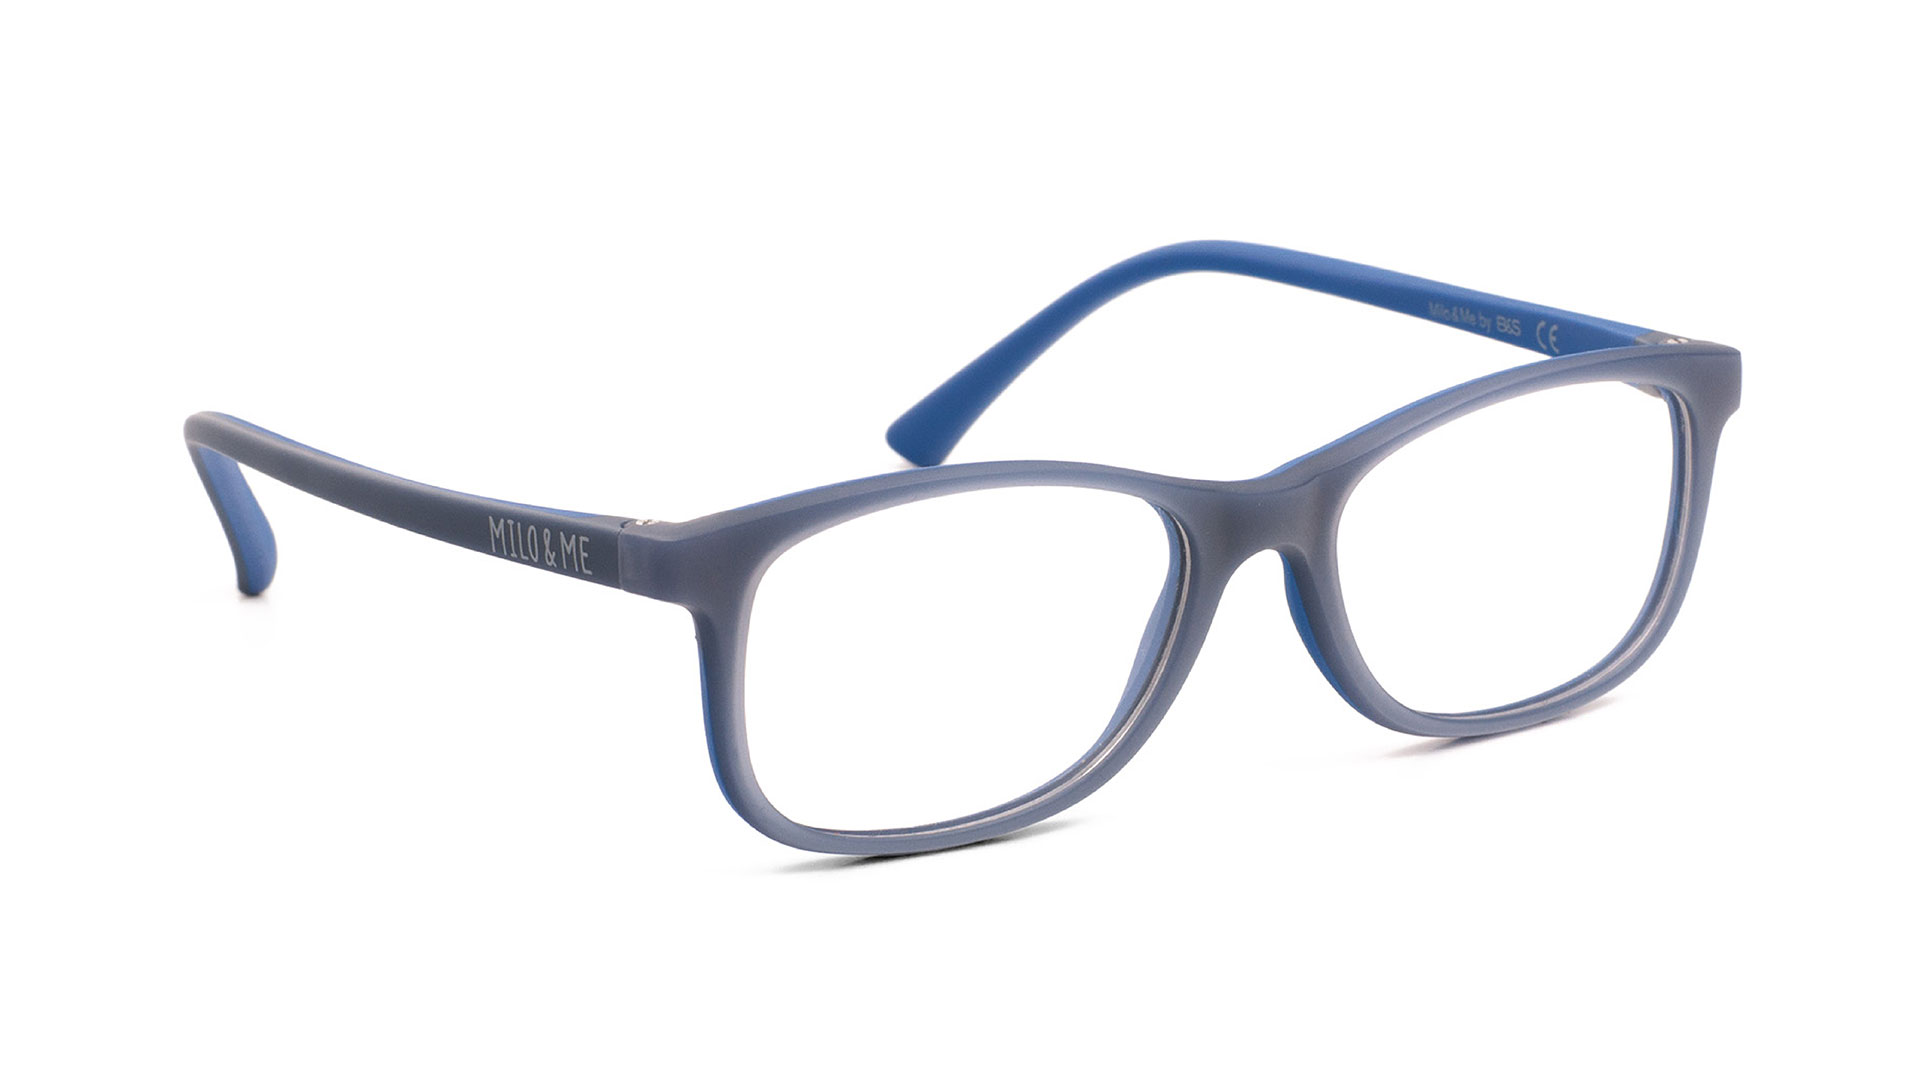 Grey Blue Blue H85040-20 - Milo & Me Eyewear - Optimum RX Lens Specialists